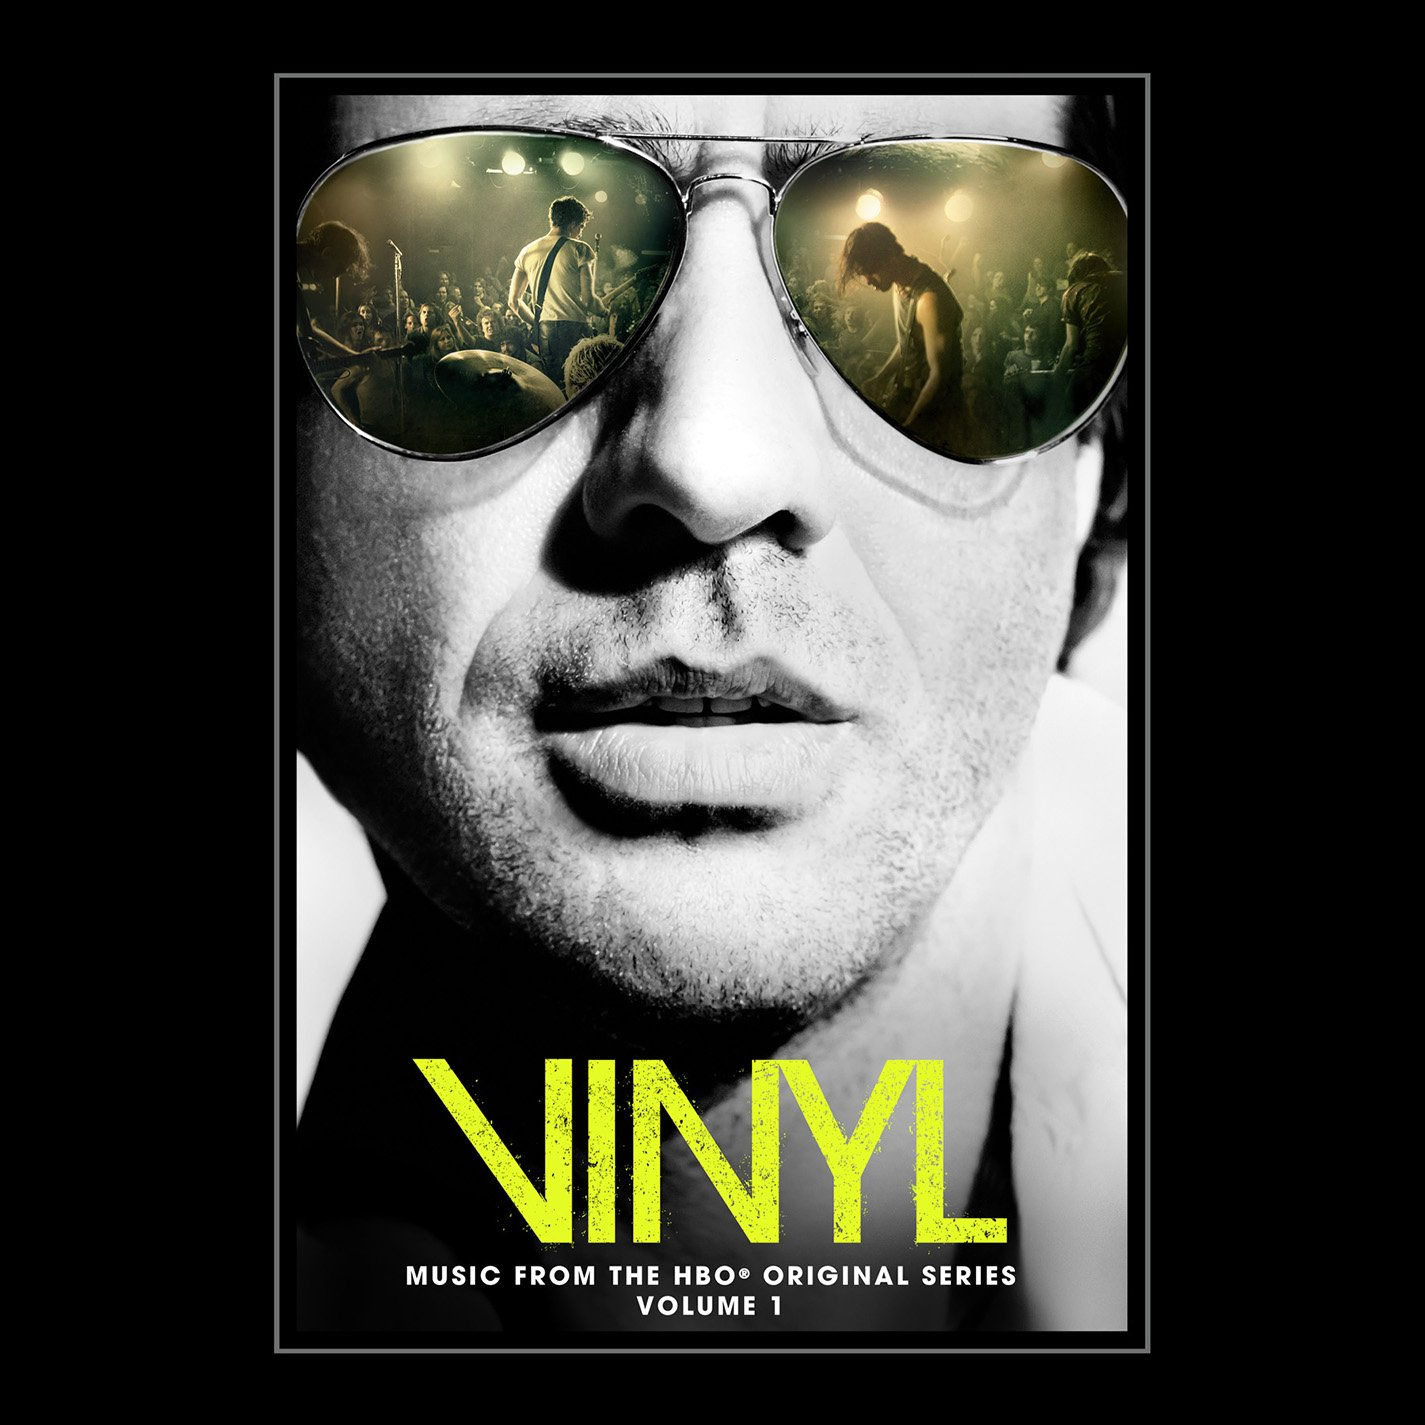 Vinyl Season 1 Soundtrack